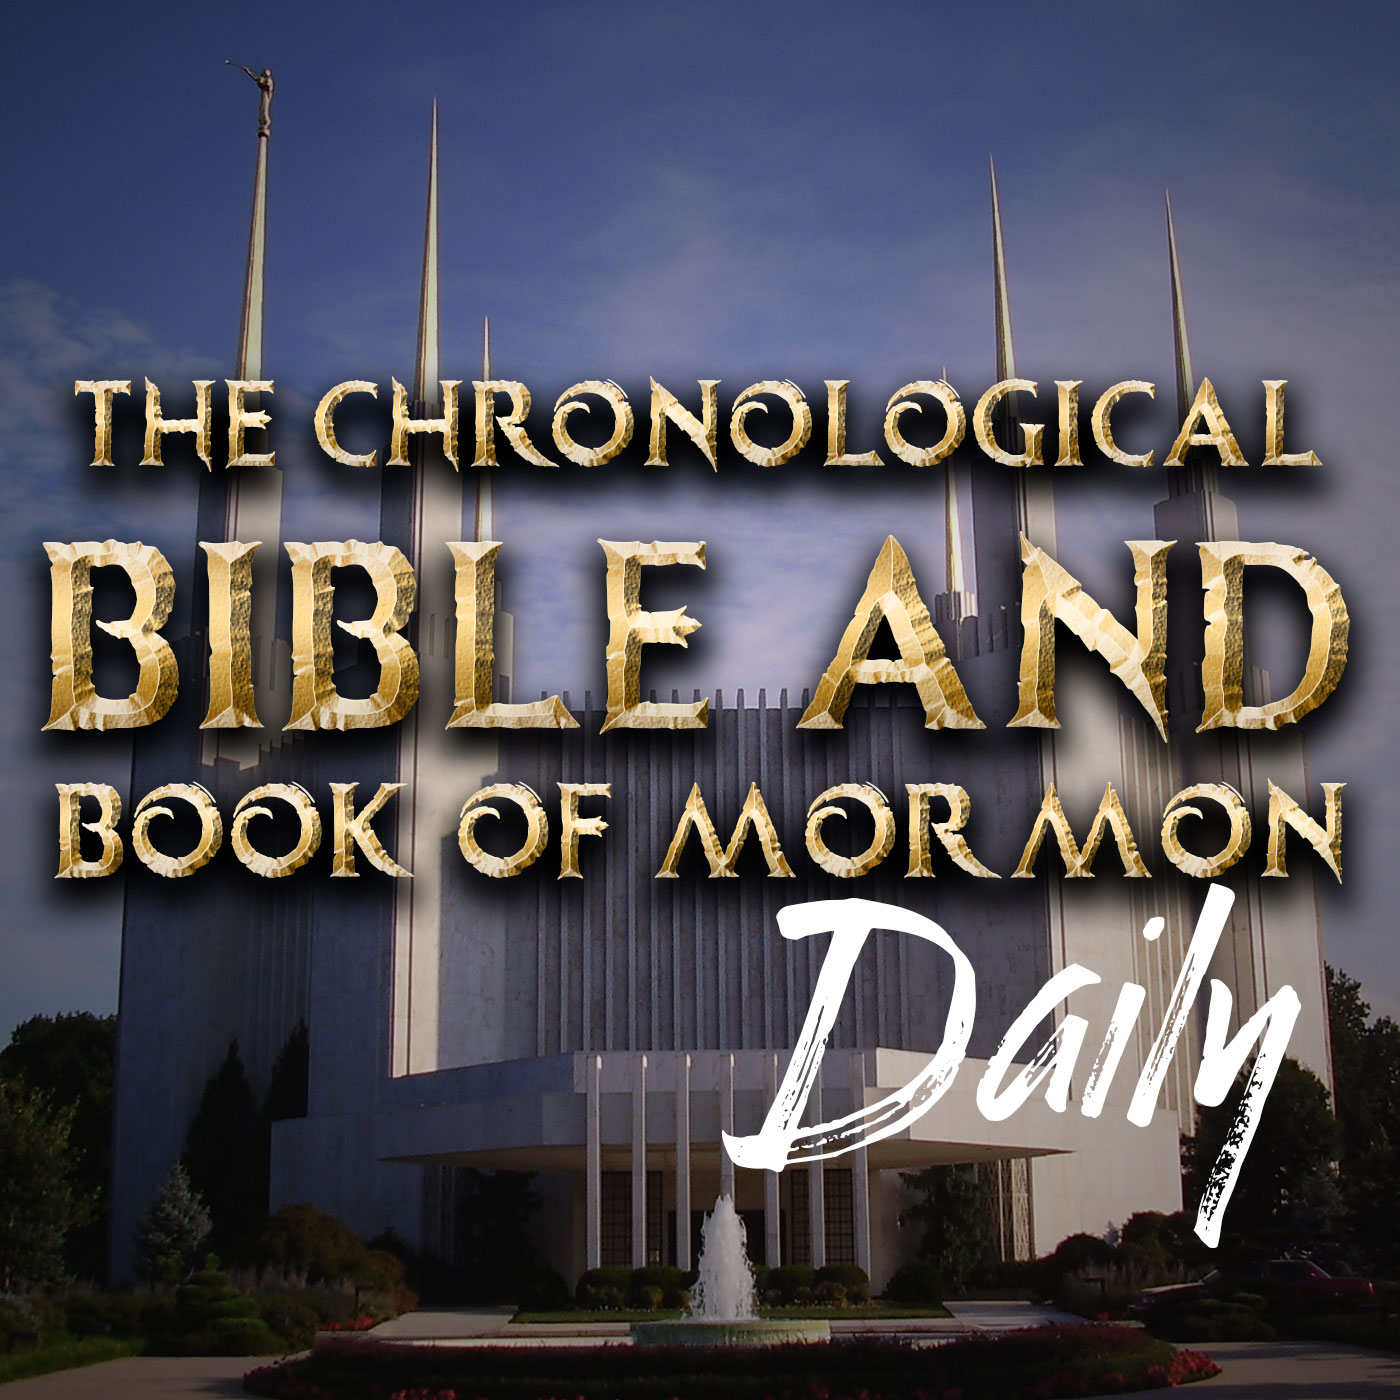 The Chronological Bible and Book of Mormon, Daily